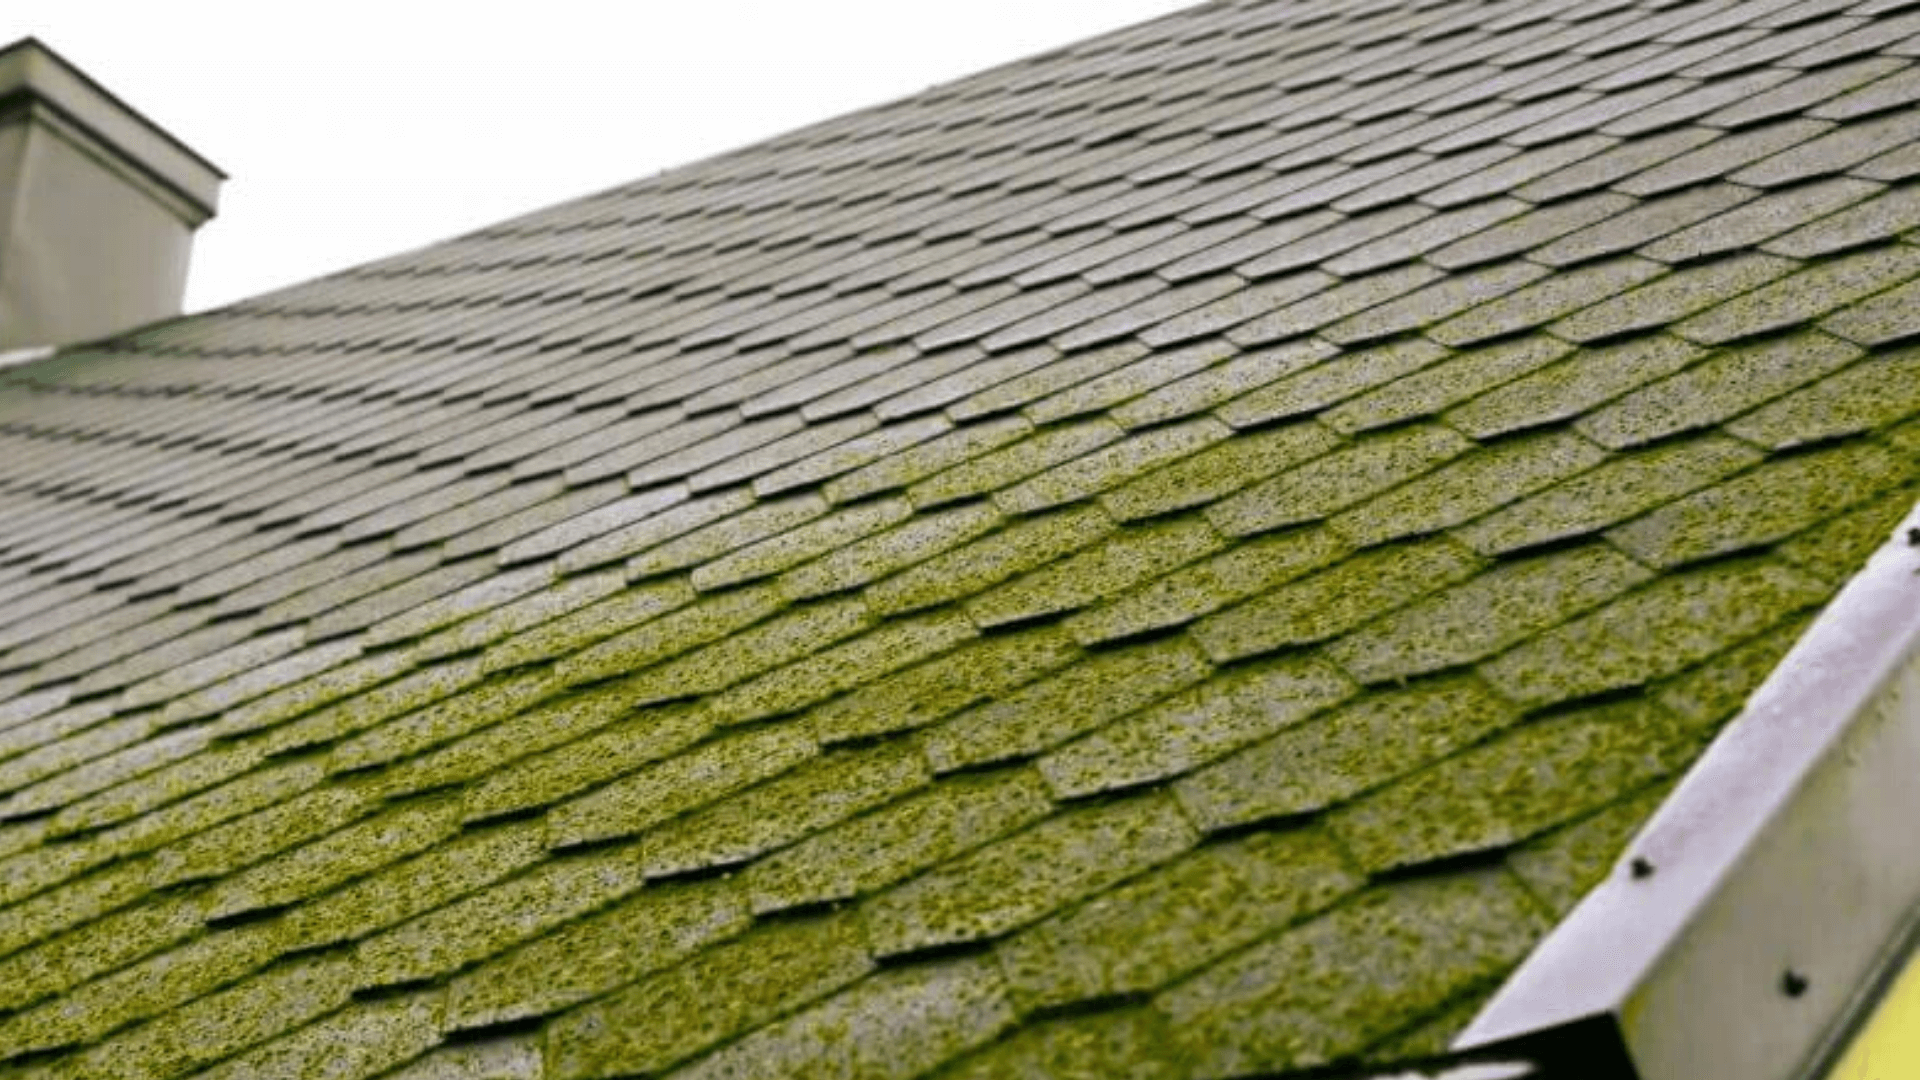 What is the Best Way to Remove Moss From Your Home Roof?